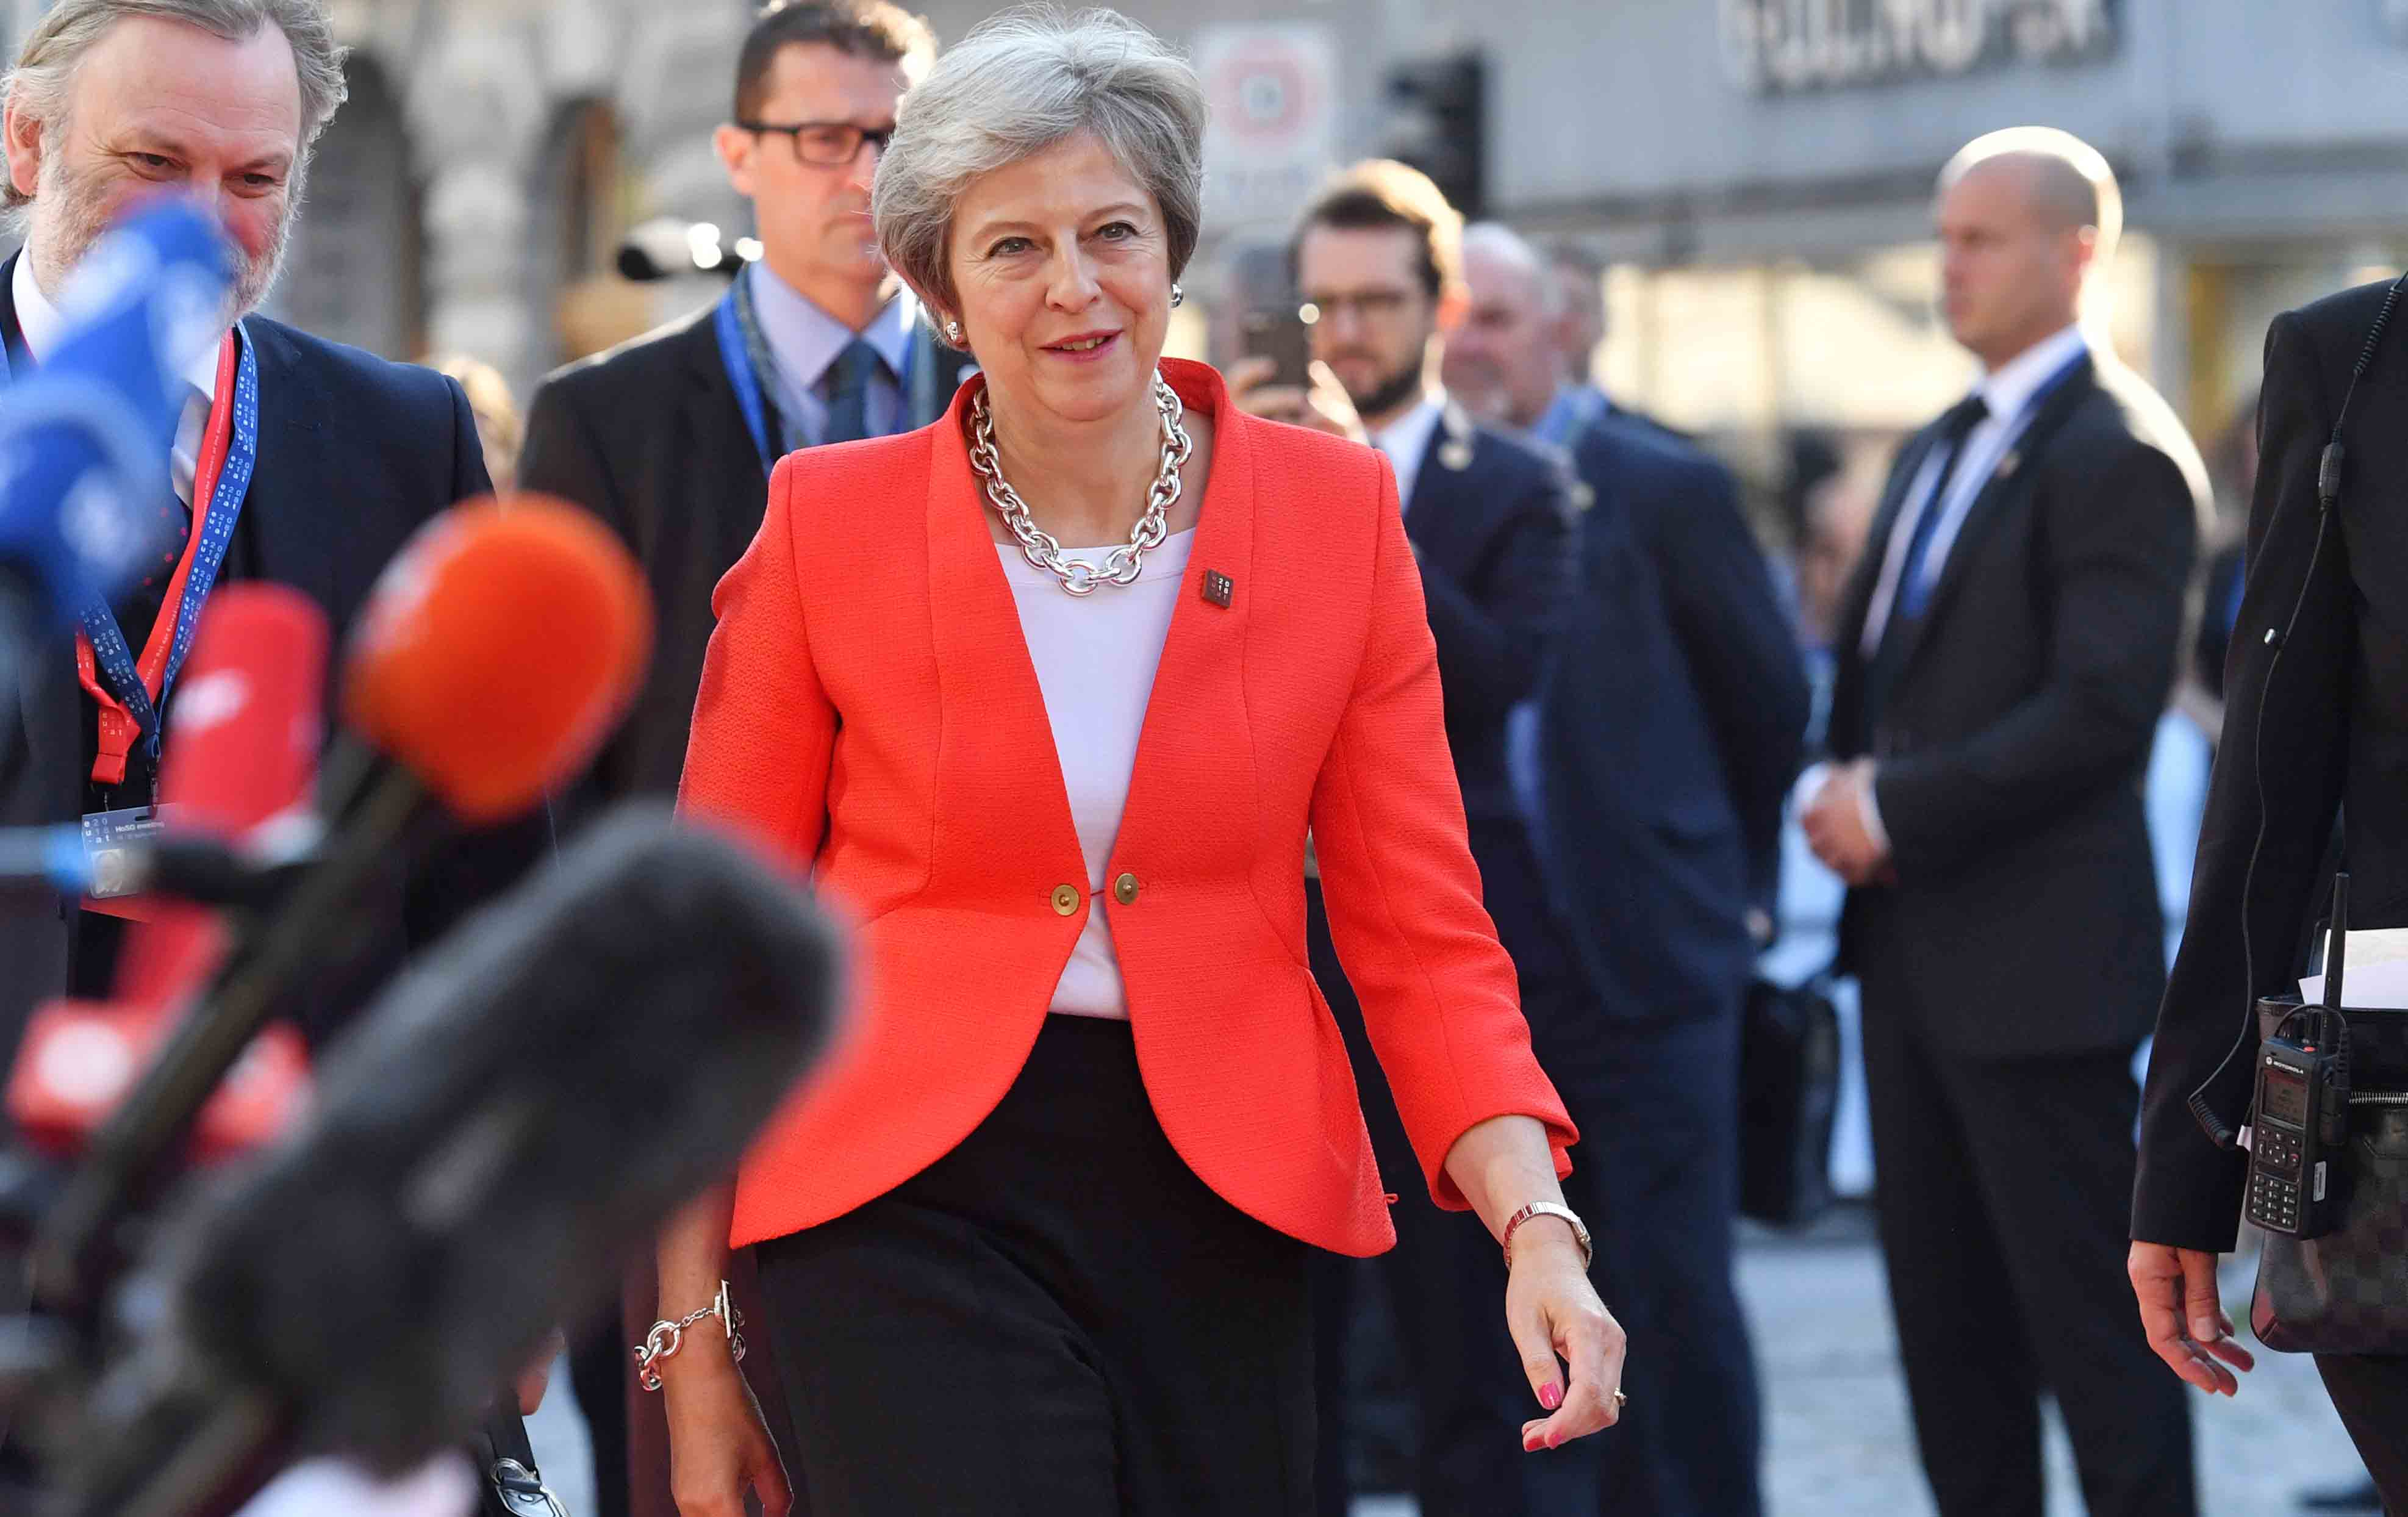 British Prime Minister Theresa May arrives at the EU summit in Salzburg, Austria, Thursday, September 20, 2018.  (AP Photo / Kerstin Joensson)